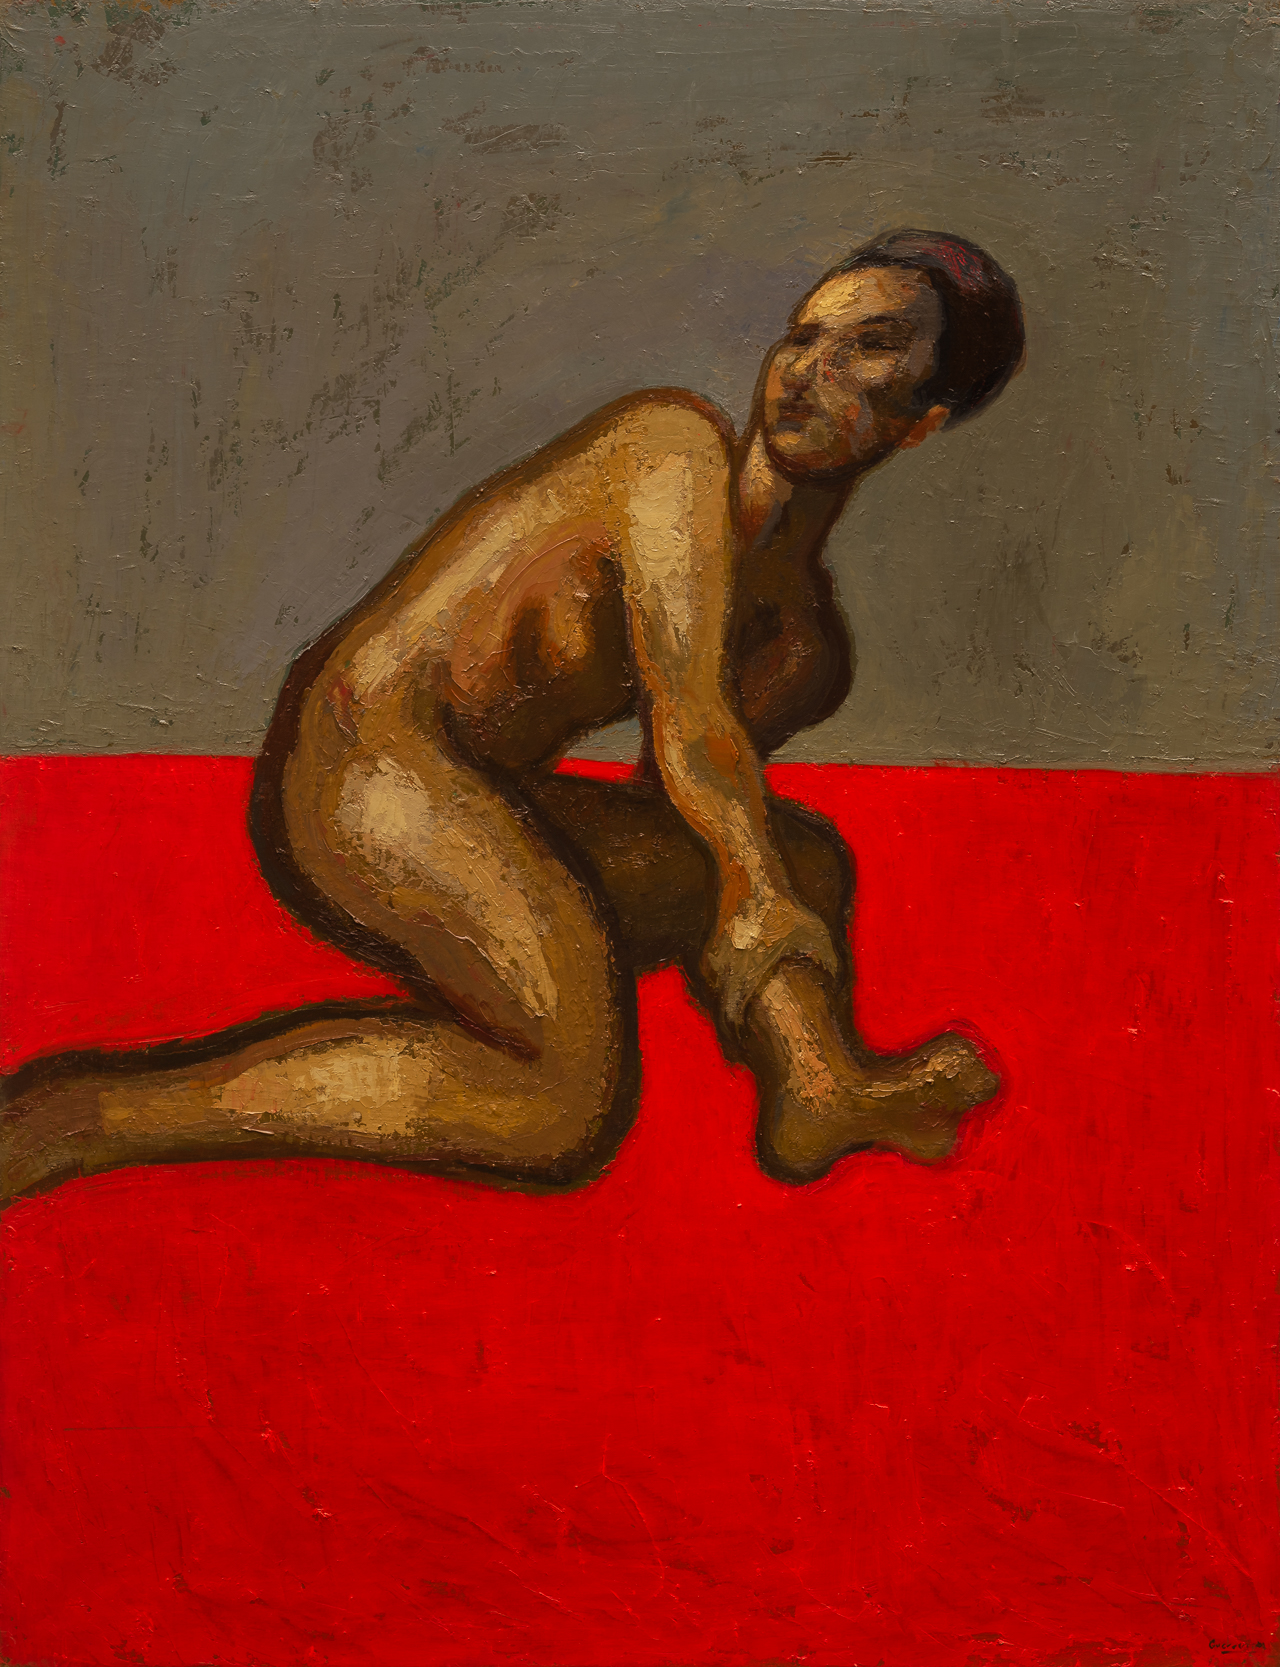 Oil on canvas painting from the Red series, by spanish artist Jose Maria Guerrero Medina